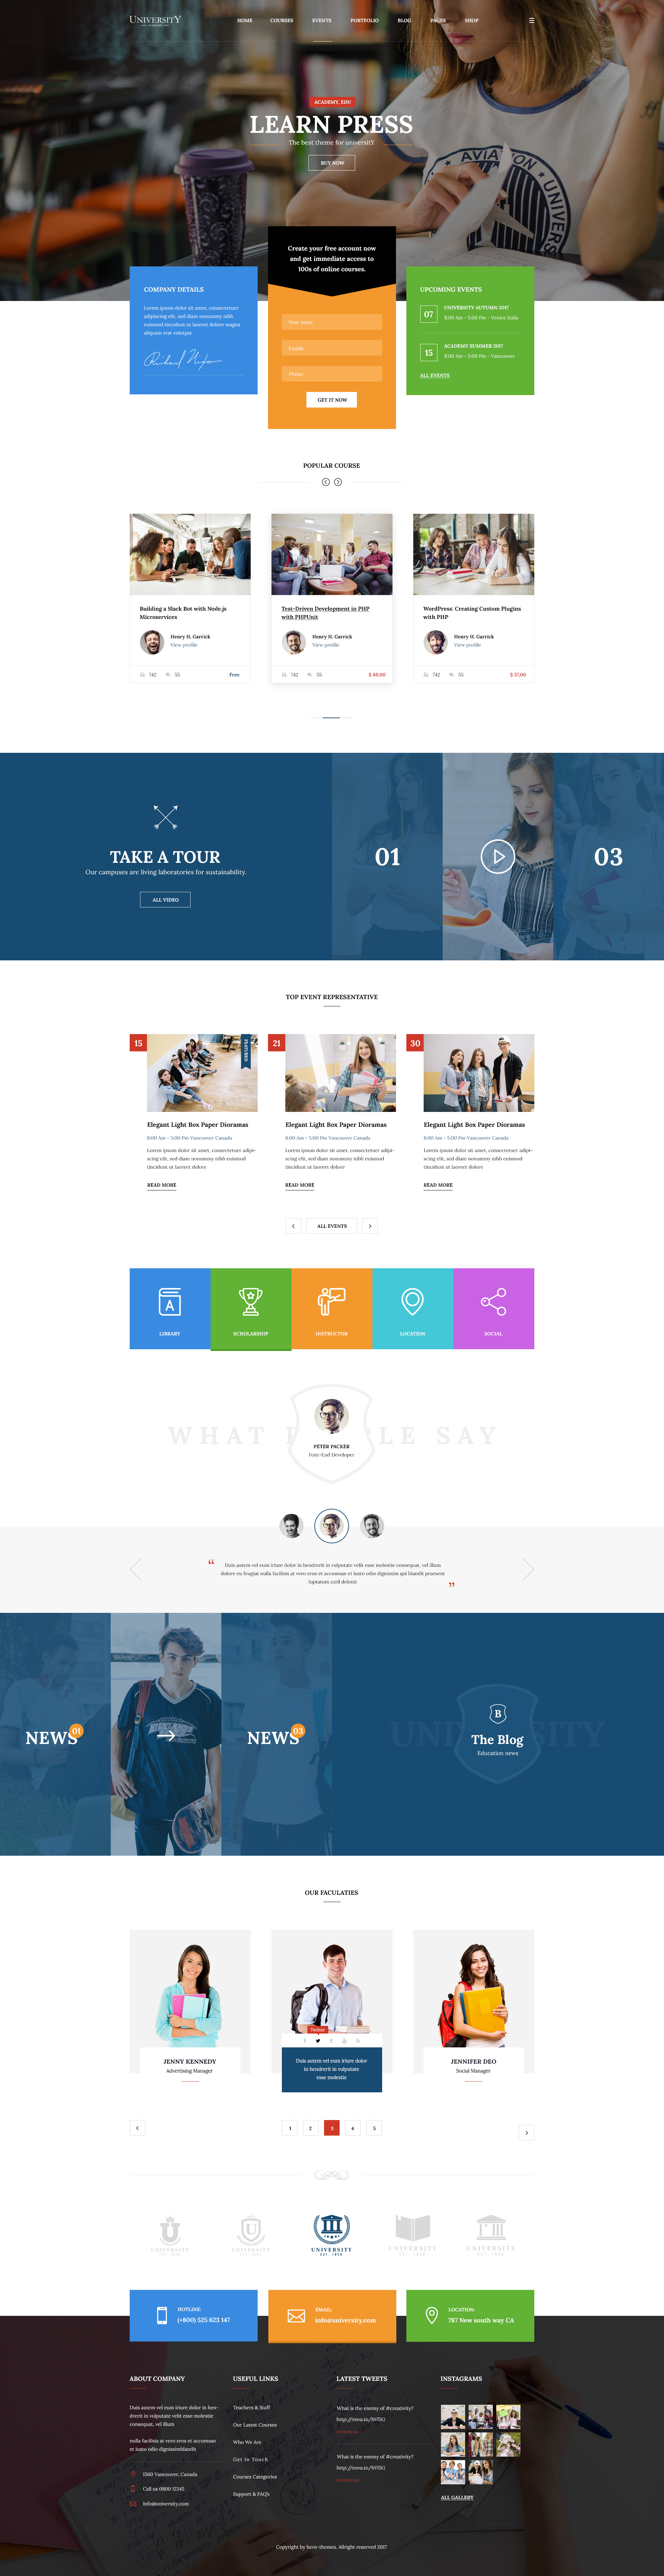 University education course academy psd templates by tivatheme preview01 homepage v1g preview02 homepage v2g preview03 homepage v3g preview04 homepage v4g preview05 homepage v5g reheart Gallery